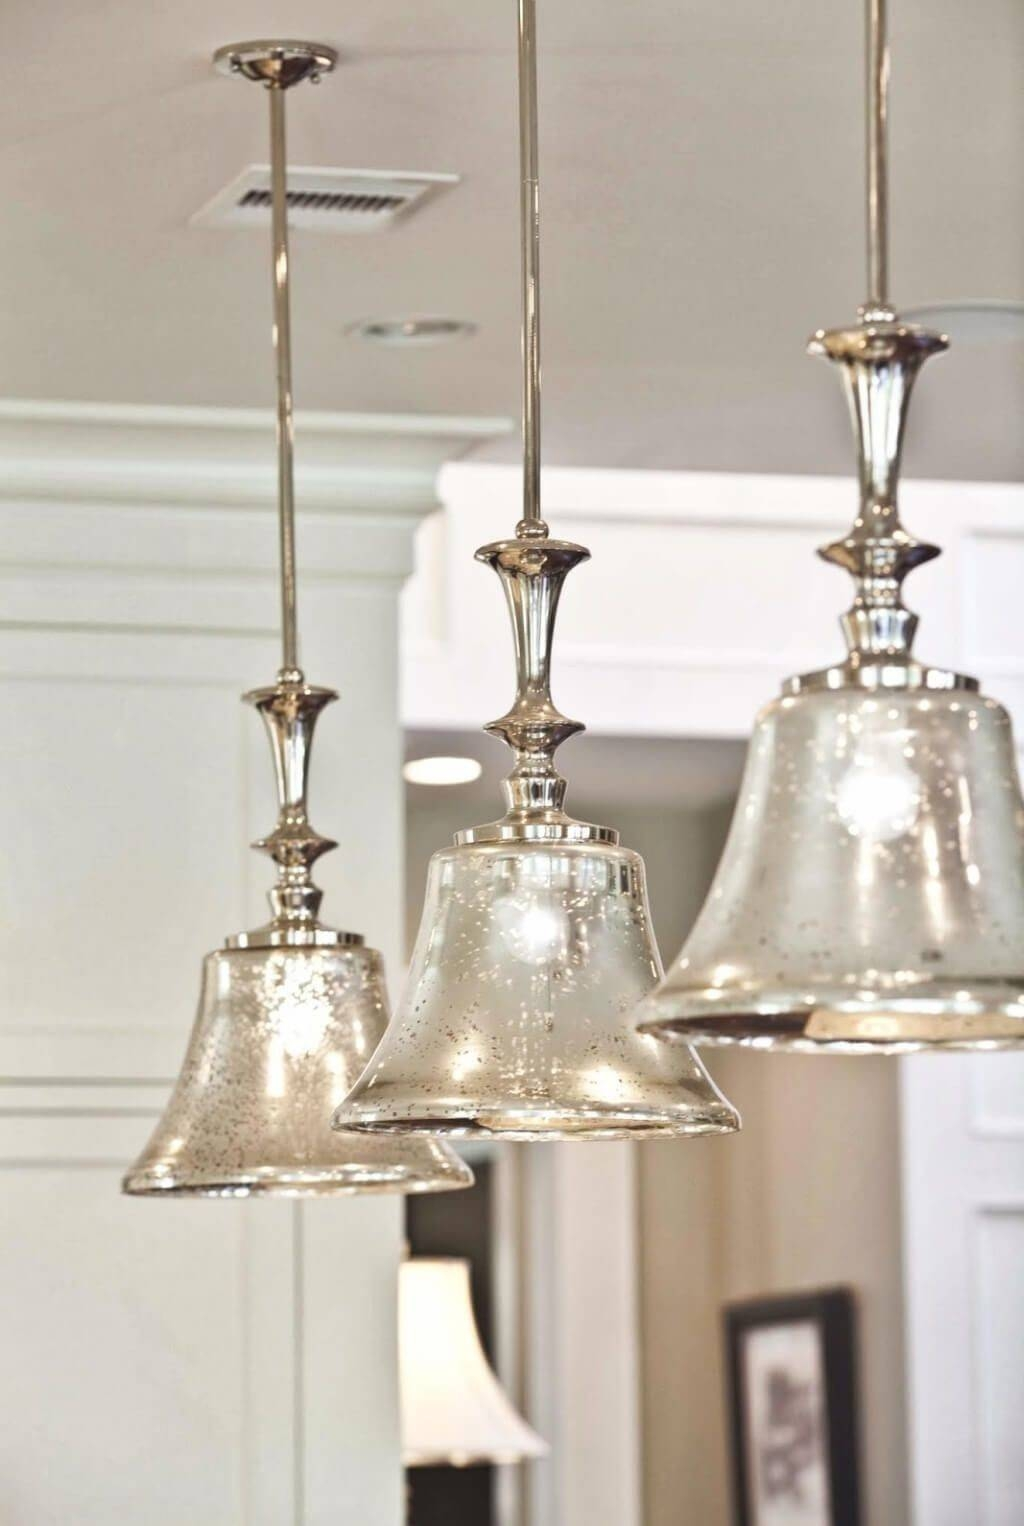 Best Vintage Glass Pendant Light 16 In Mini Pendant Lighting For with regard to Small Glass Pendant Lights (Image 4 of 15)